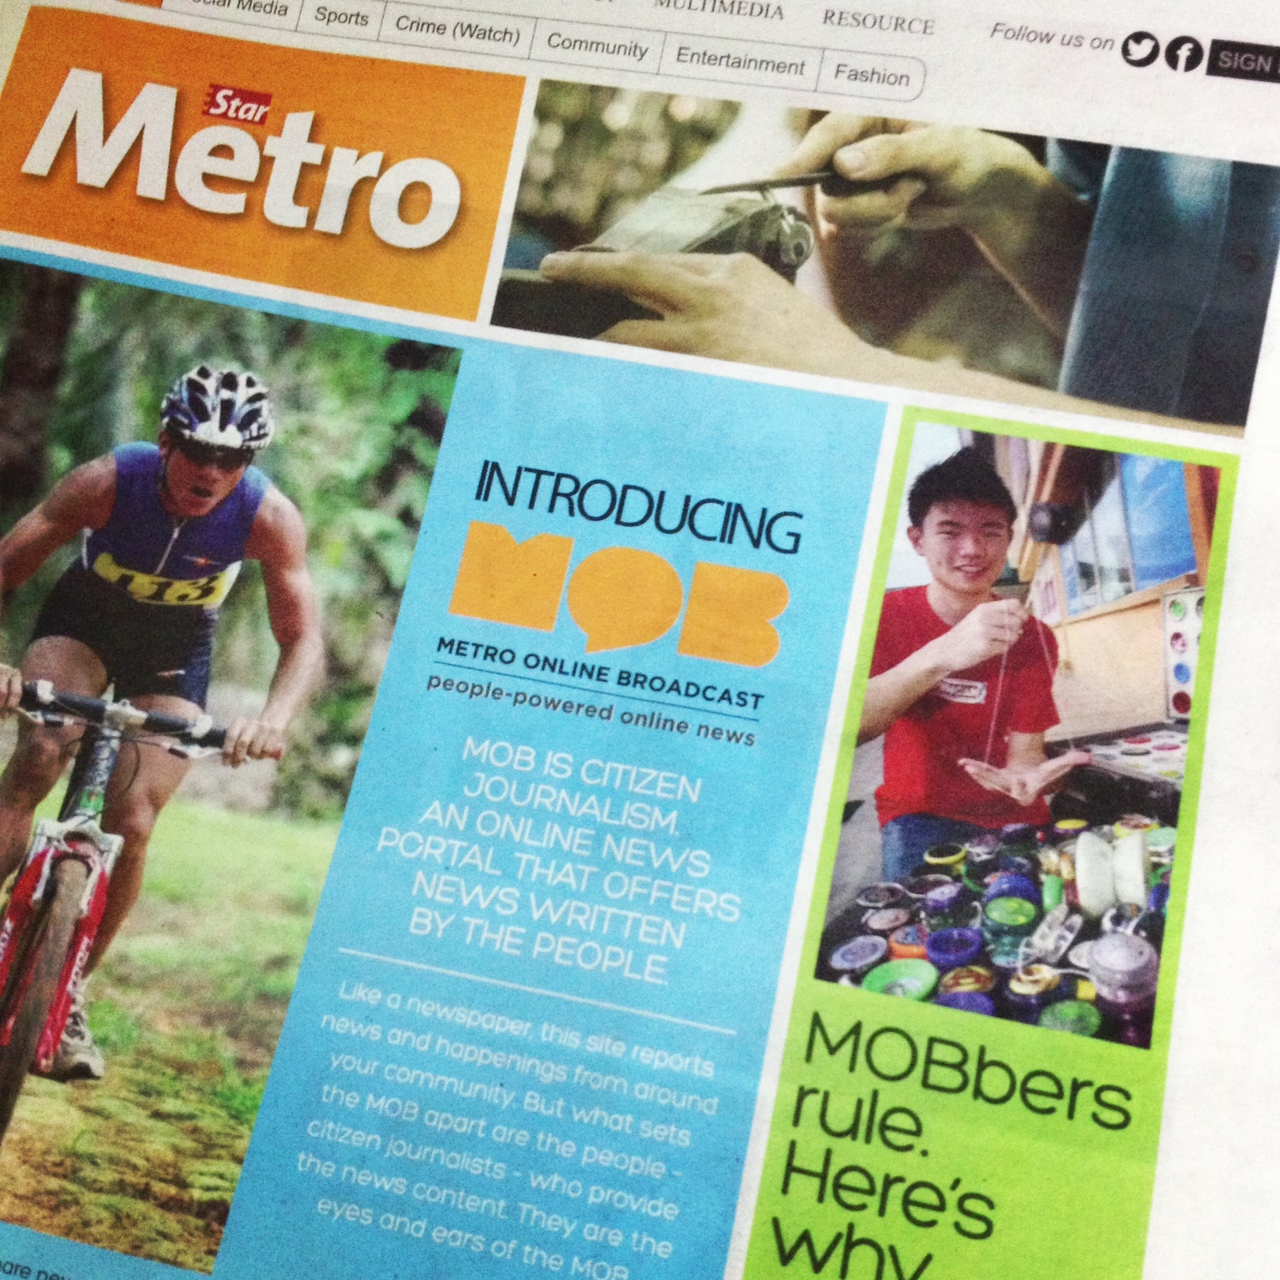 FEATURED IN STAR METRO MOB 2013 MAY